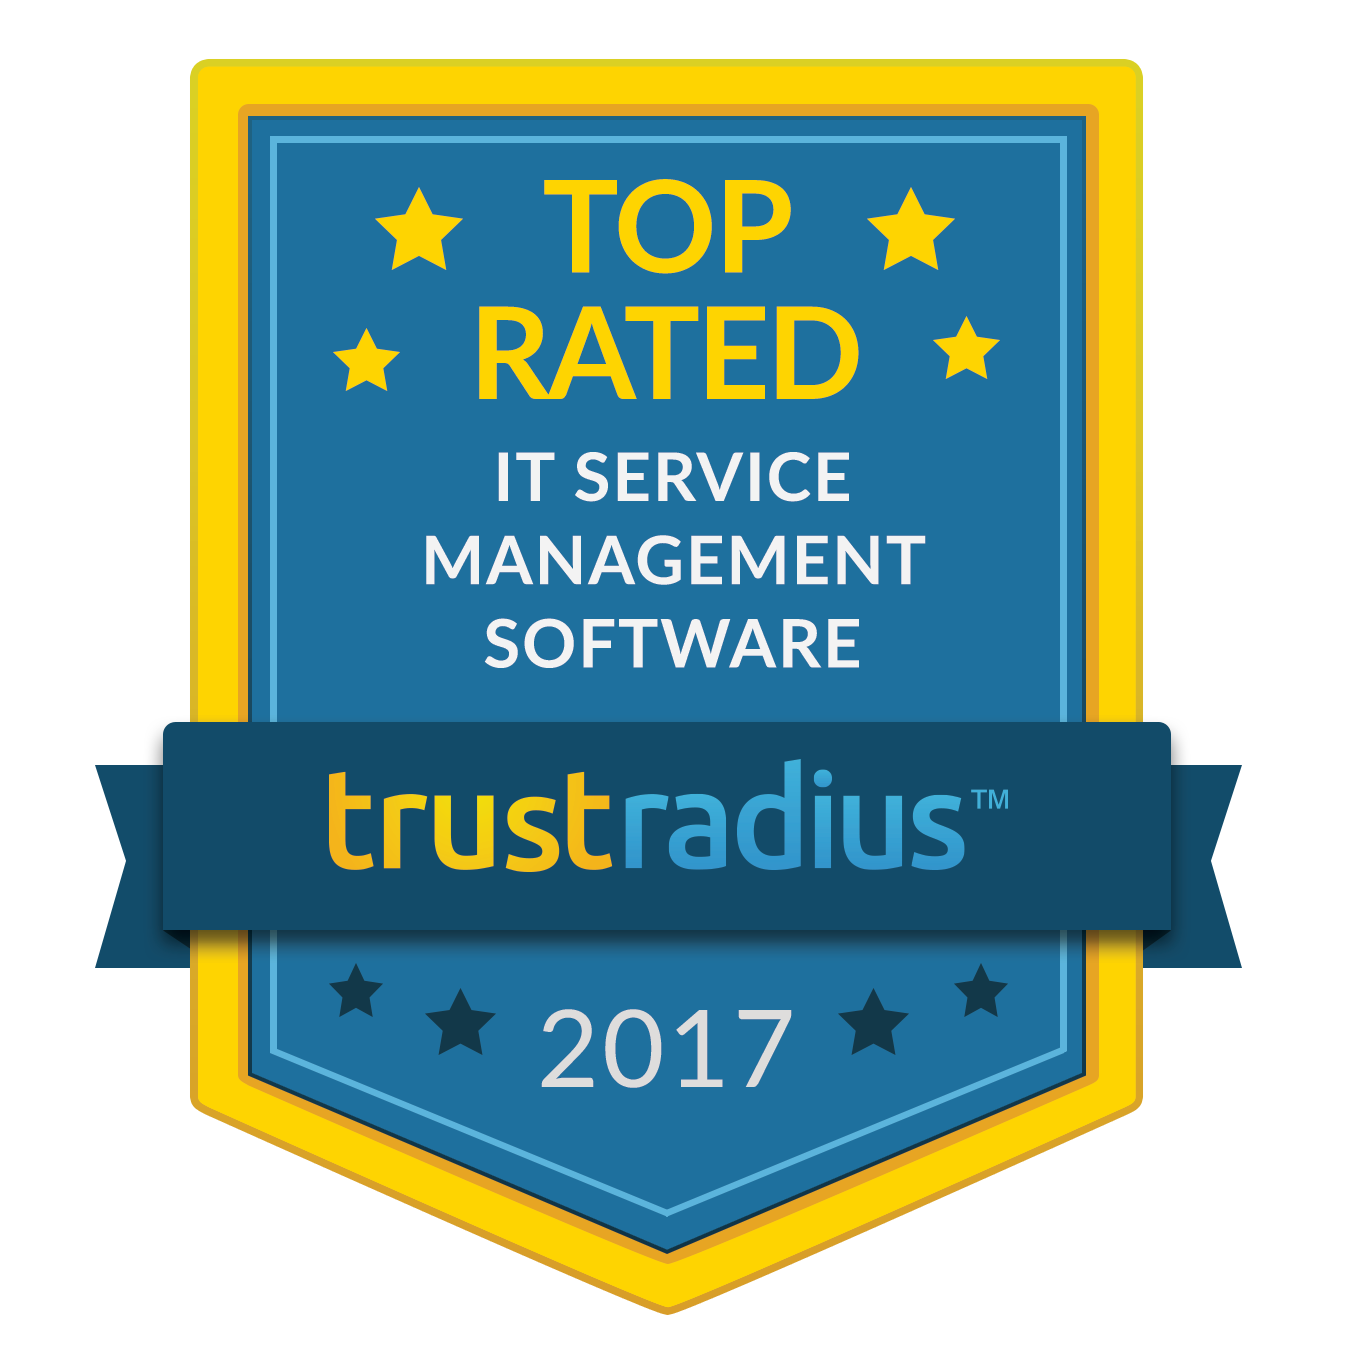 Trustradius Icon Top rated IT Service Management Software